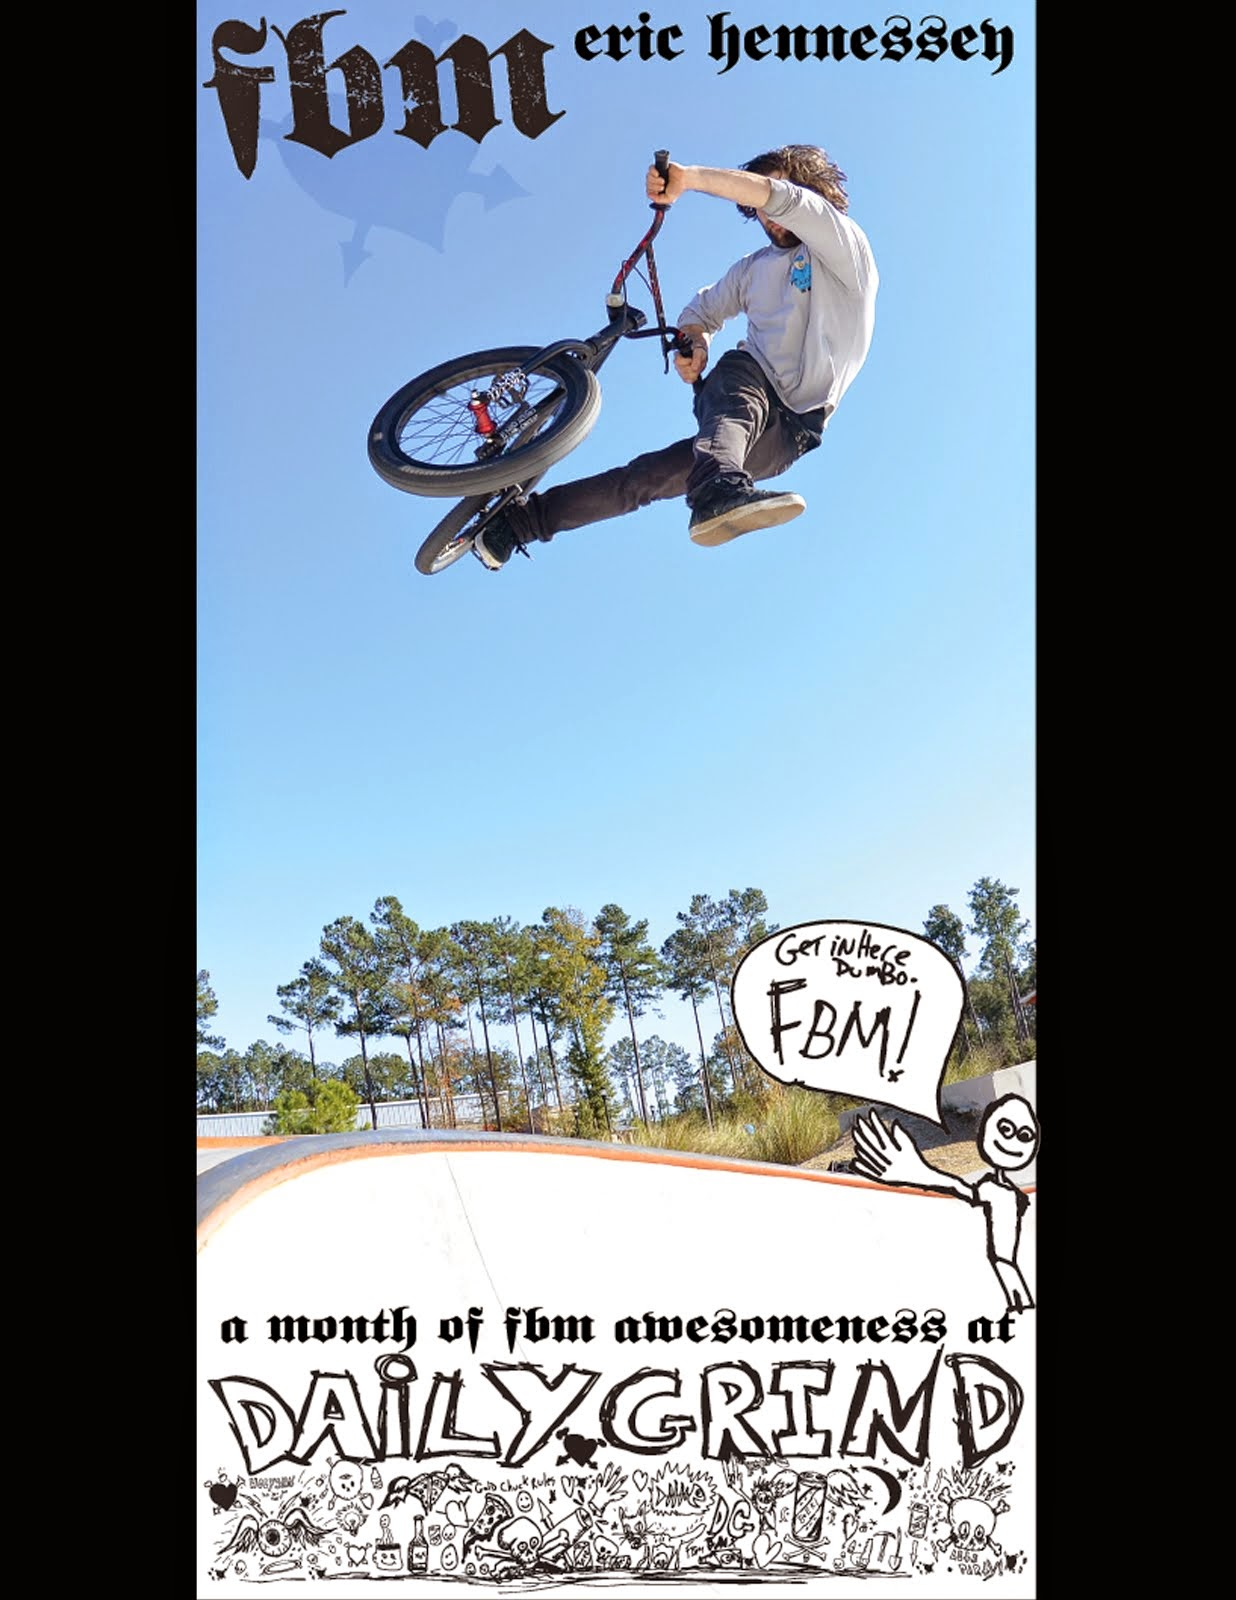 DAILY GRIND BMX AND SKATE SHOP